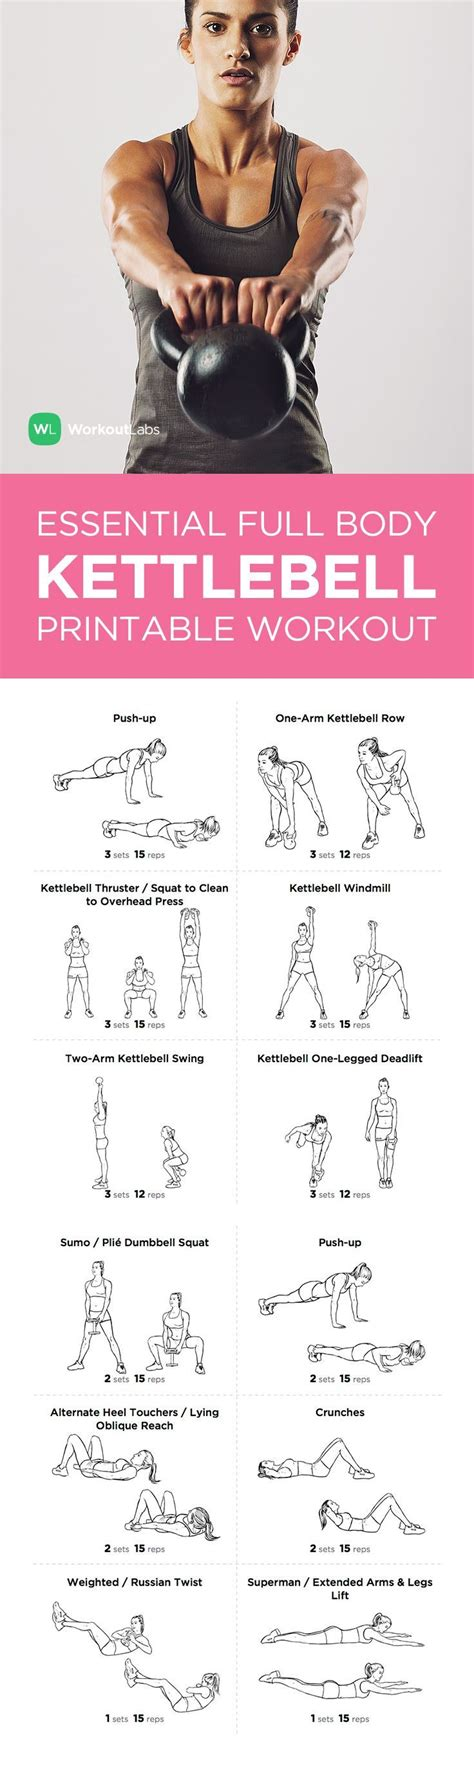 kettlebell workout printable body fitness workouts workoutlabs pdf gym health plans essential exercises weight kettle exercise total loss visit kettlebells